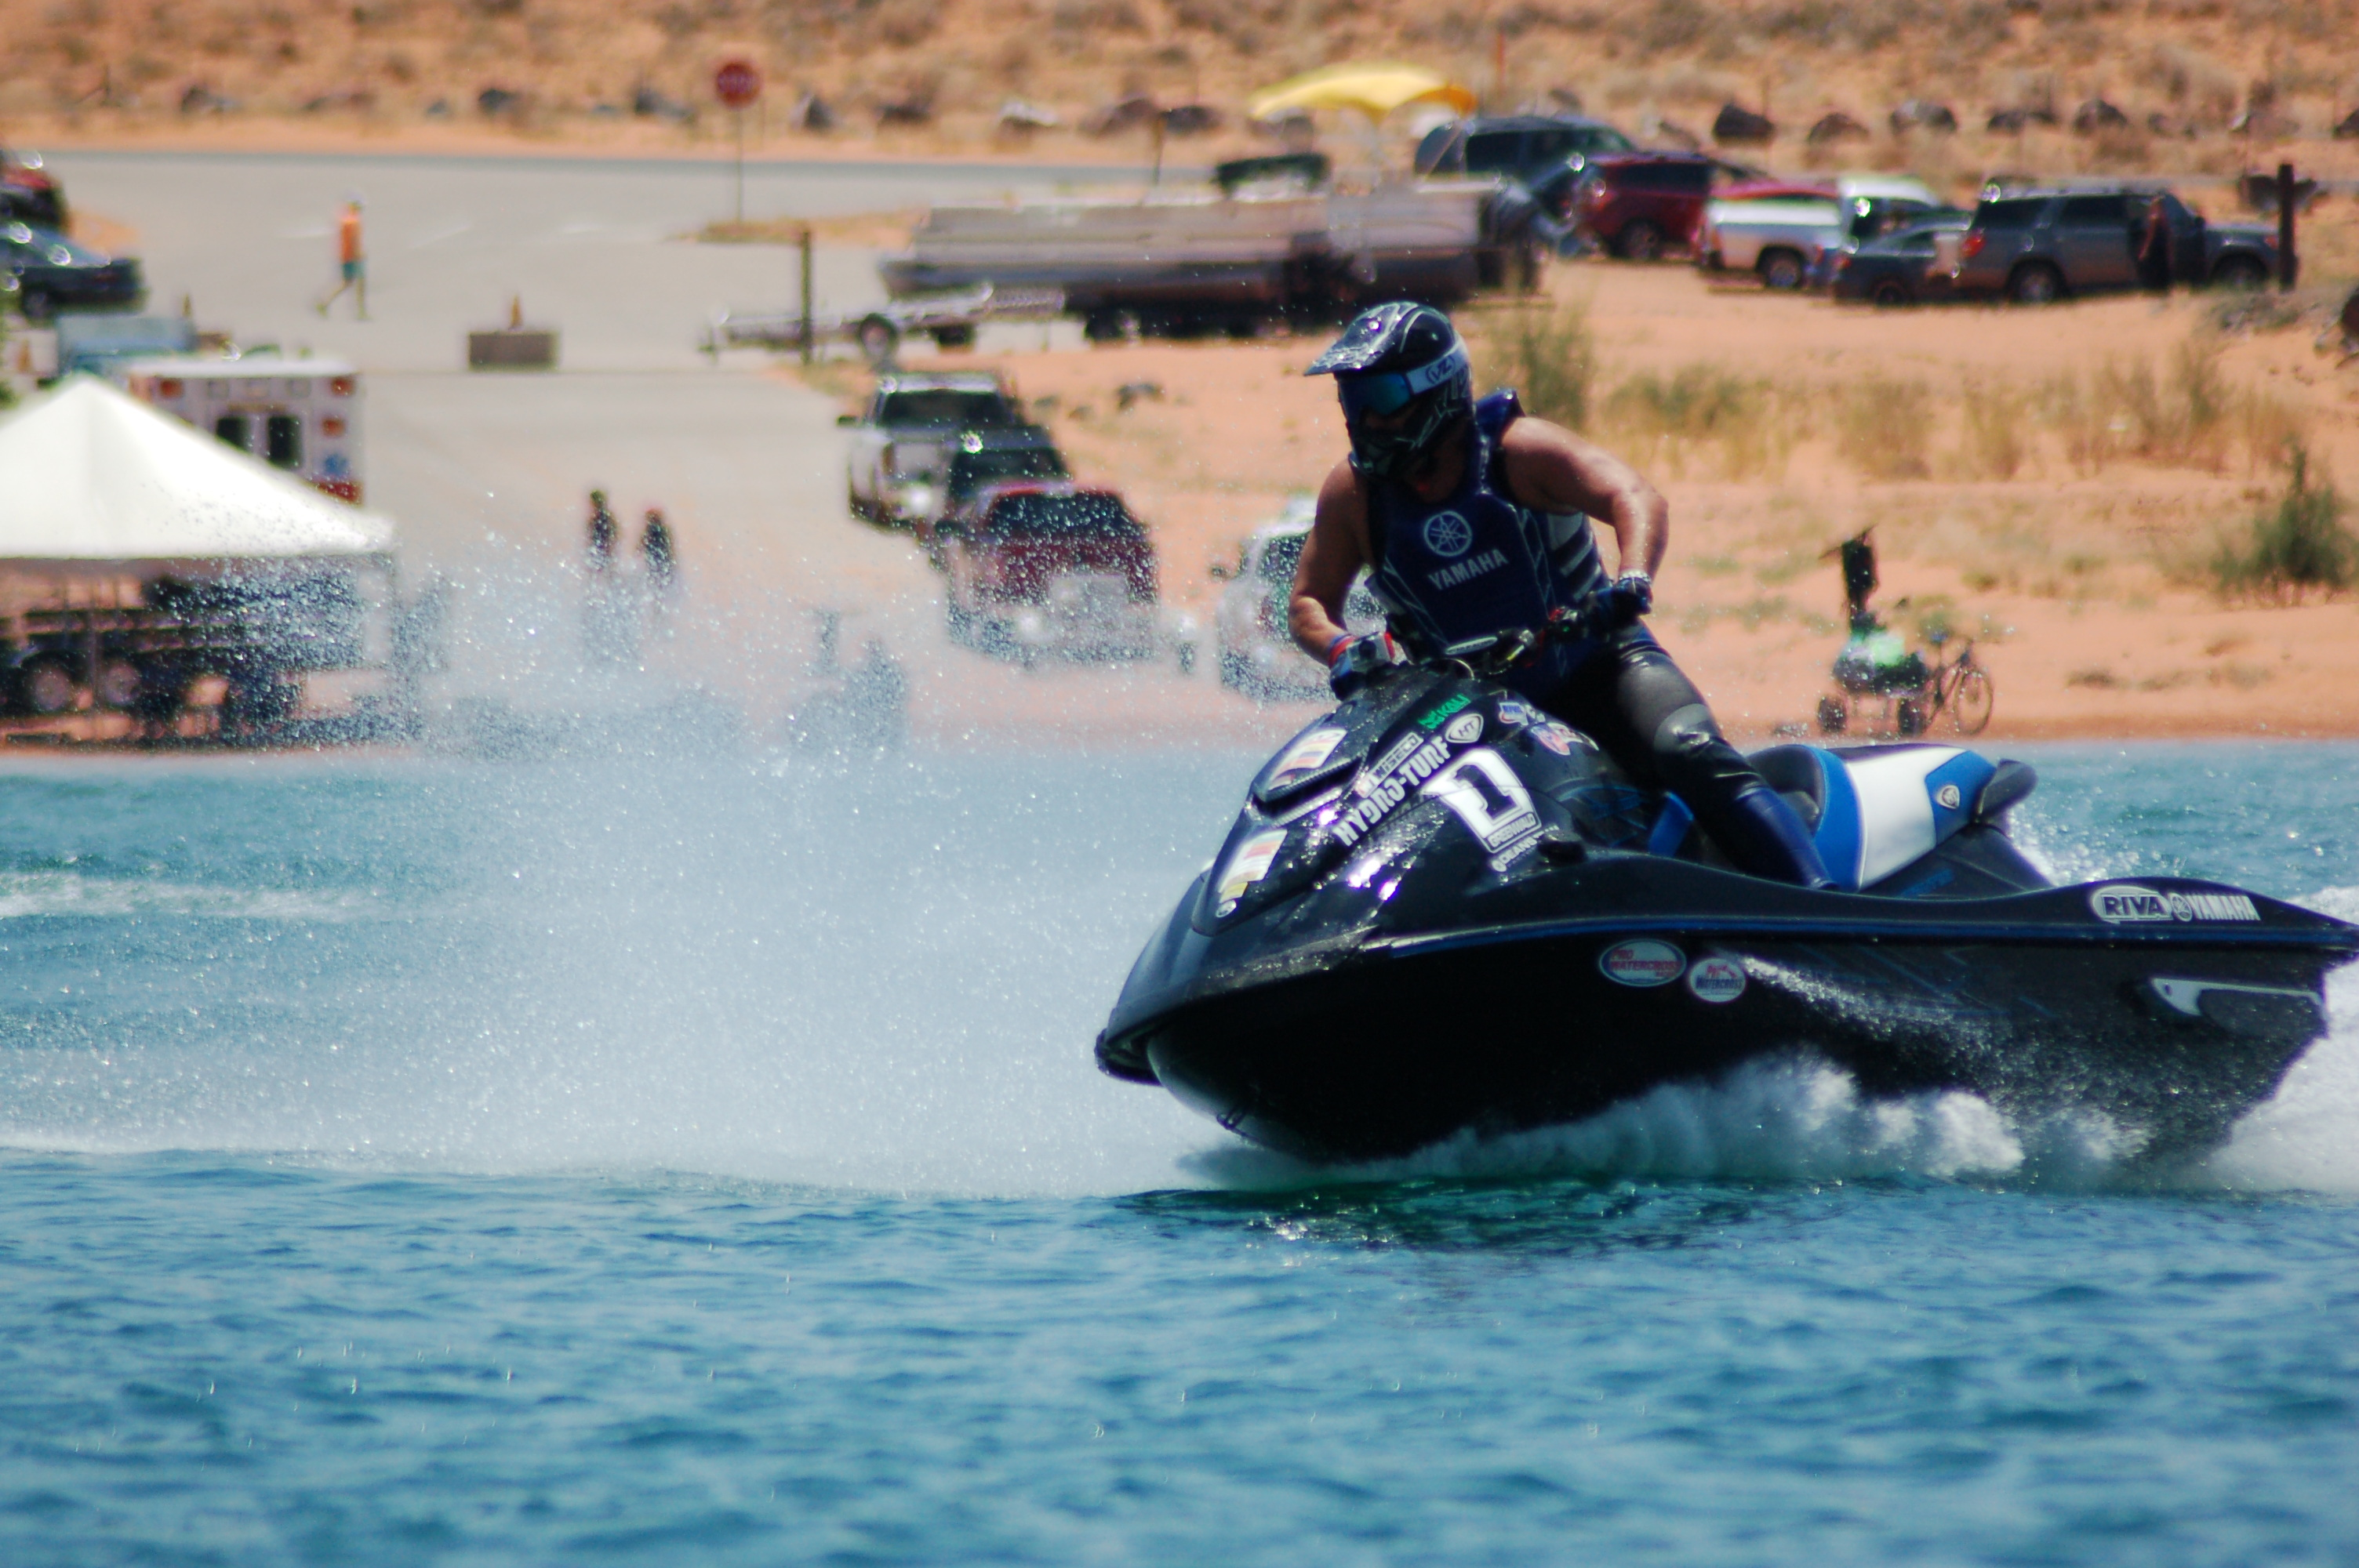 The Pro Watercross Tour splashes across Sand Hollow Reservoir in this photo from 2015, Sand Hollow State Park, Utah, June 27, 2015 | Photo by Hollie Reina, St. George News